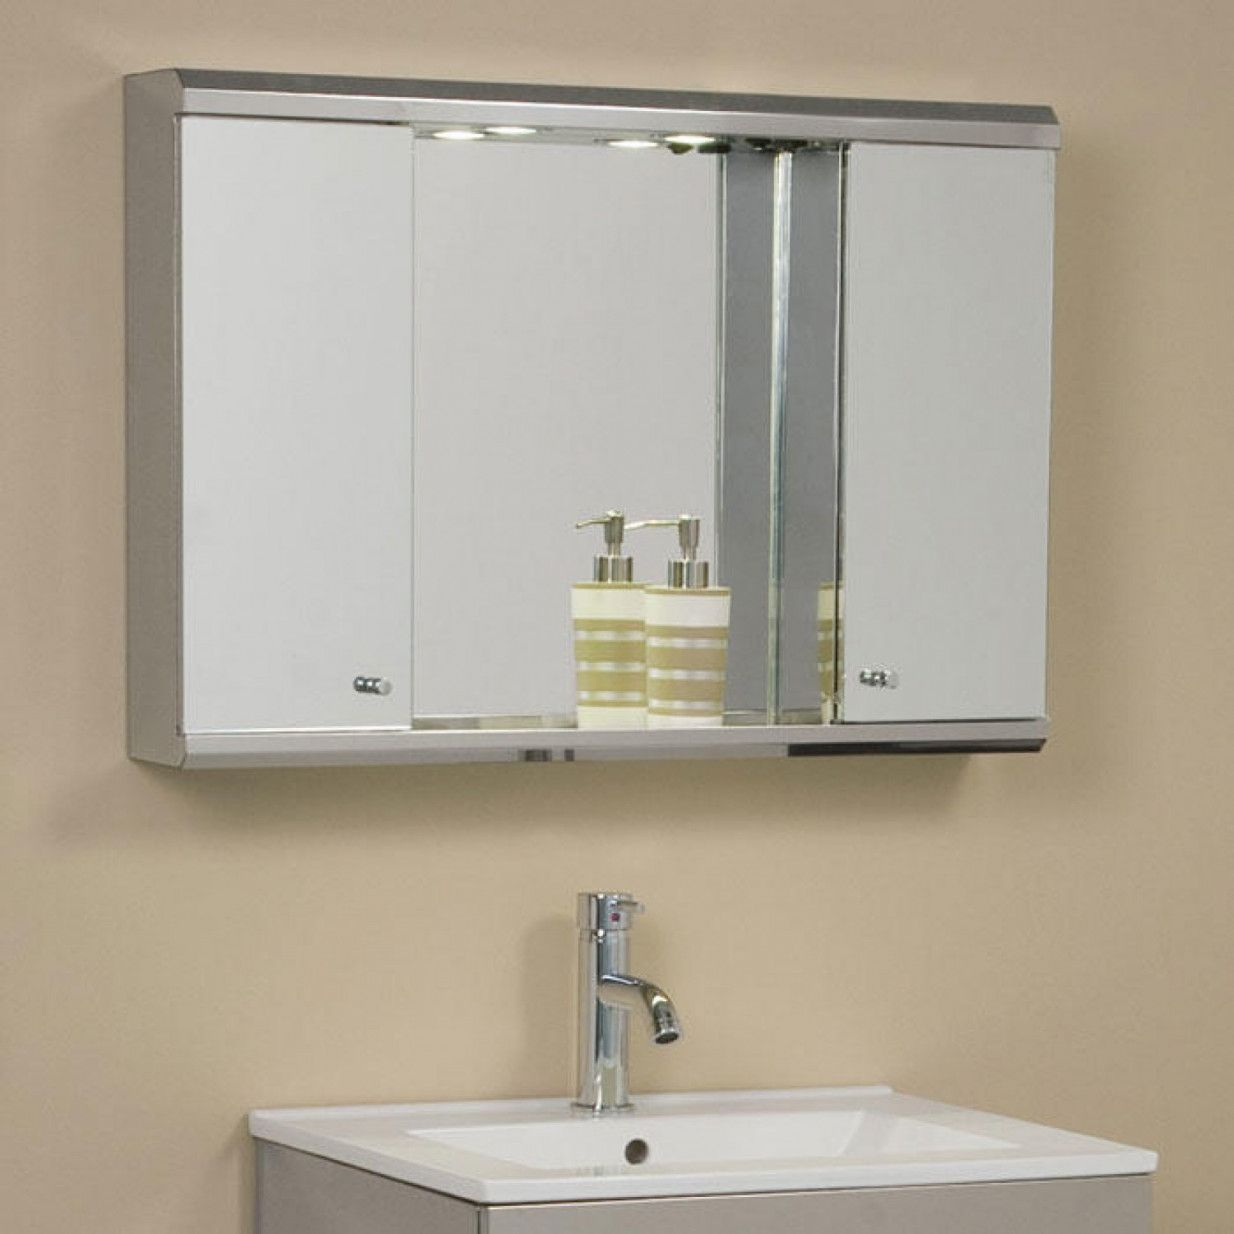 50 Horizontal Bathroom Medicine Cabinets Best Paint For Interior Walls Check More At Http